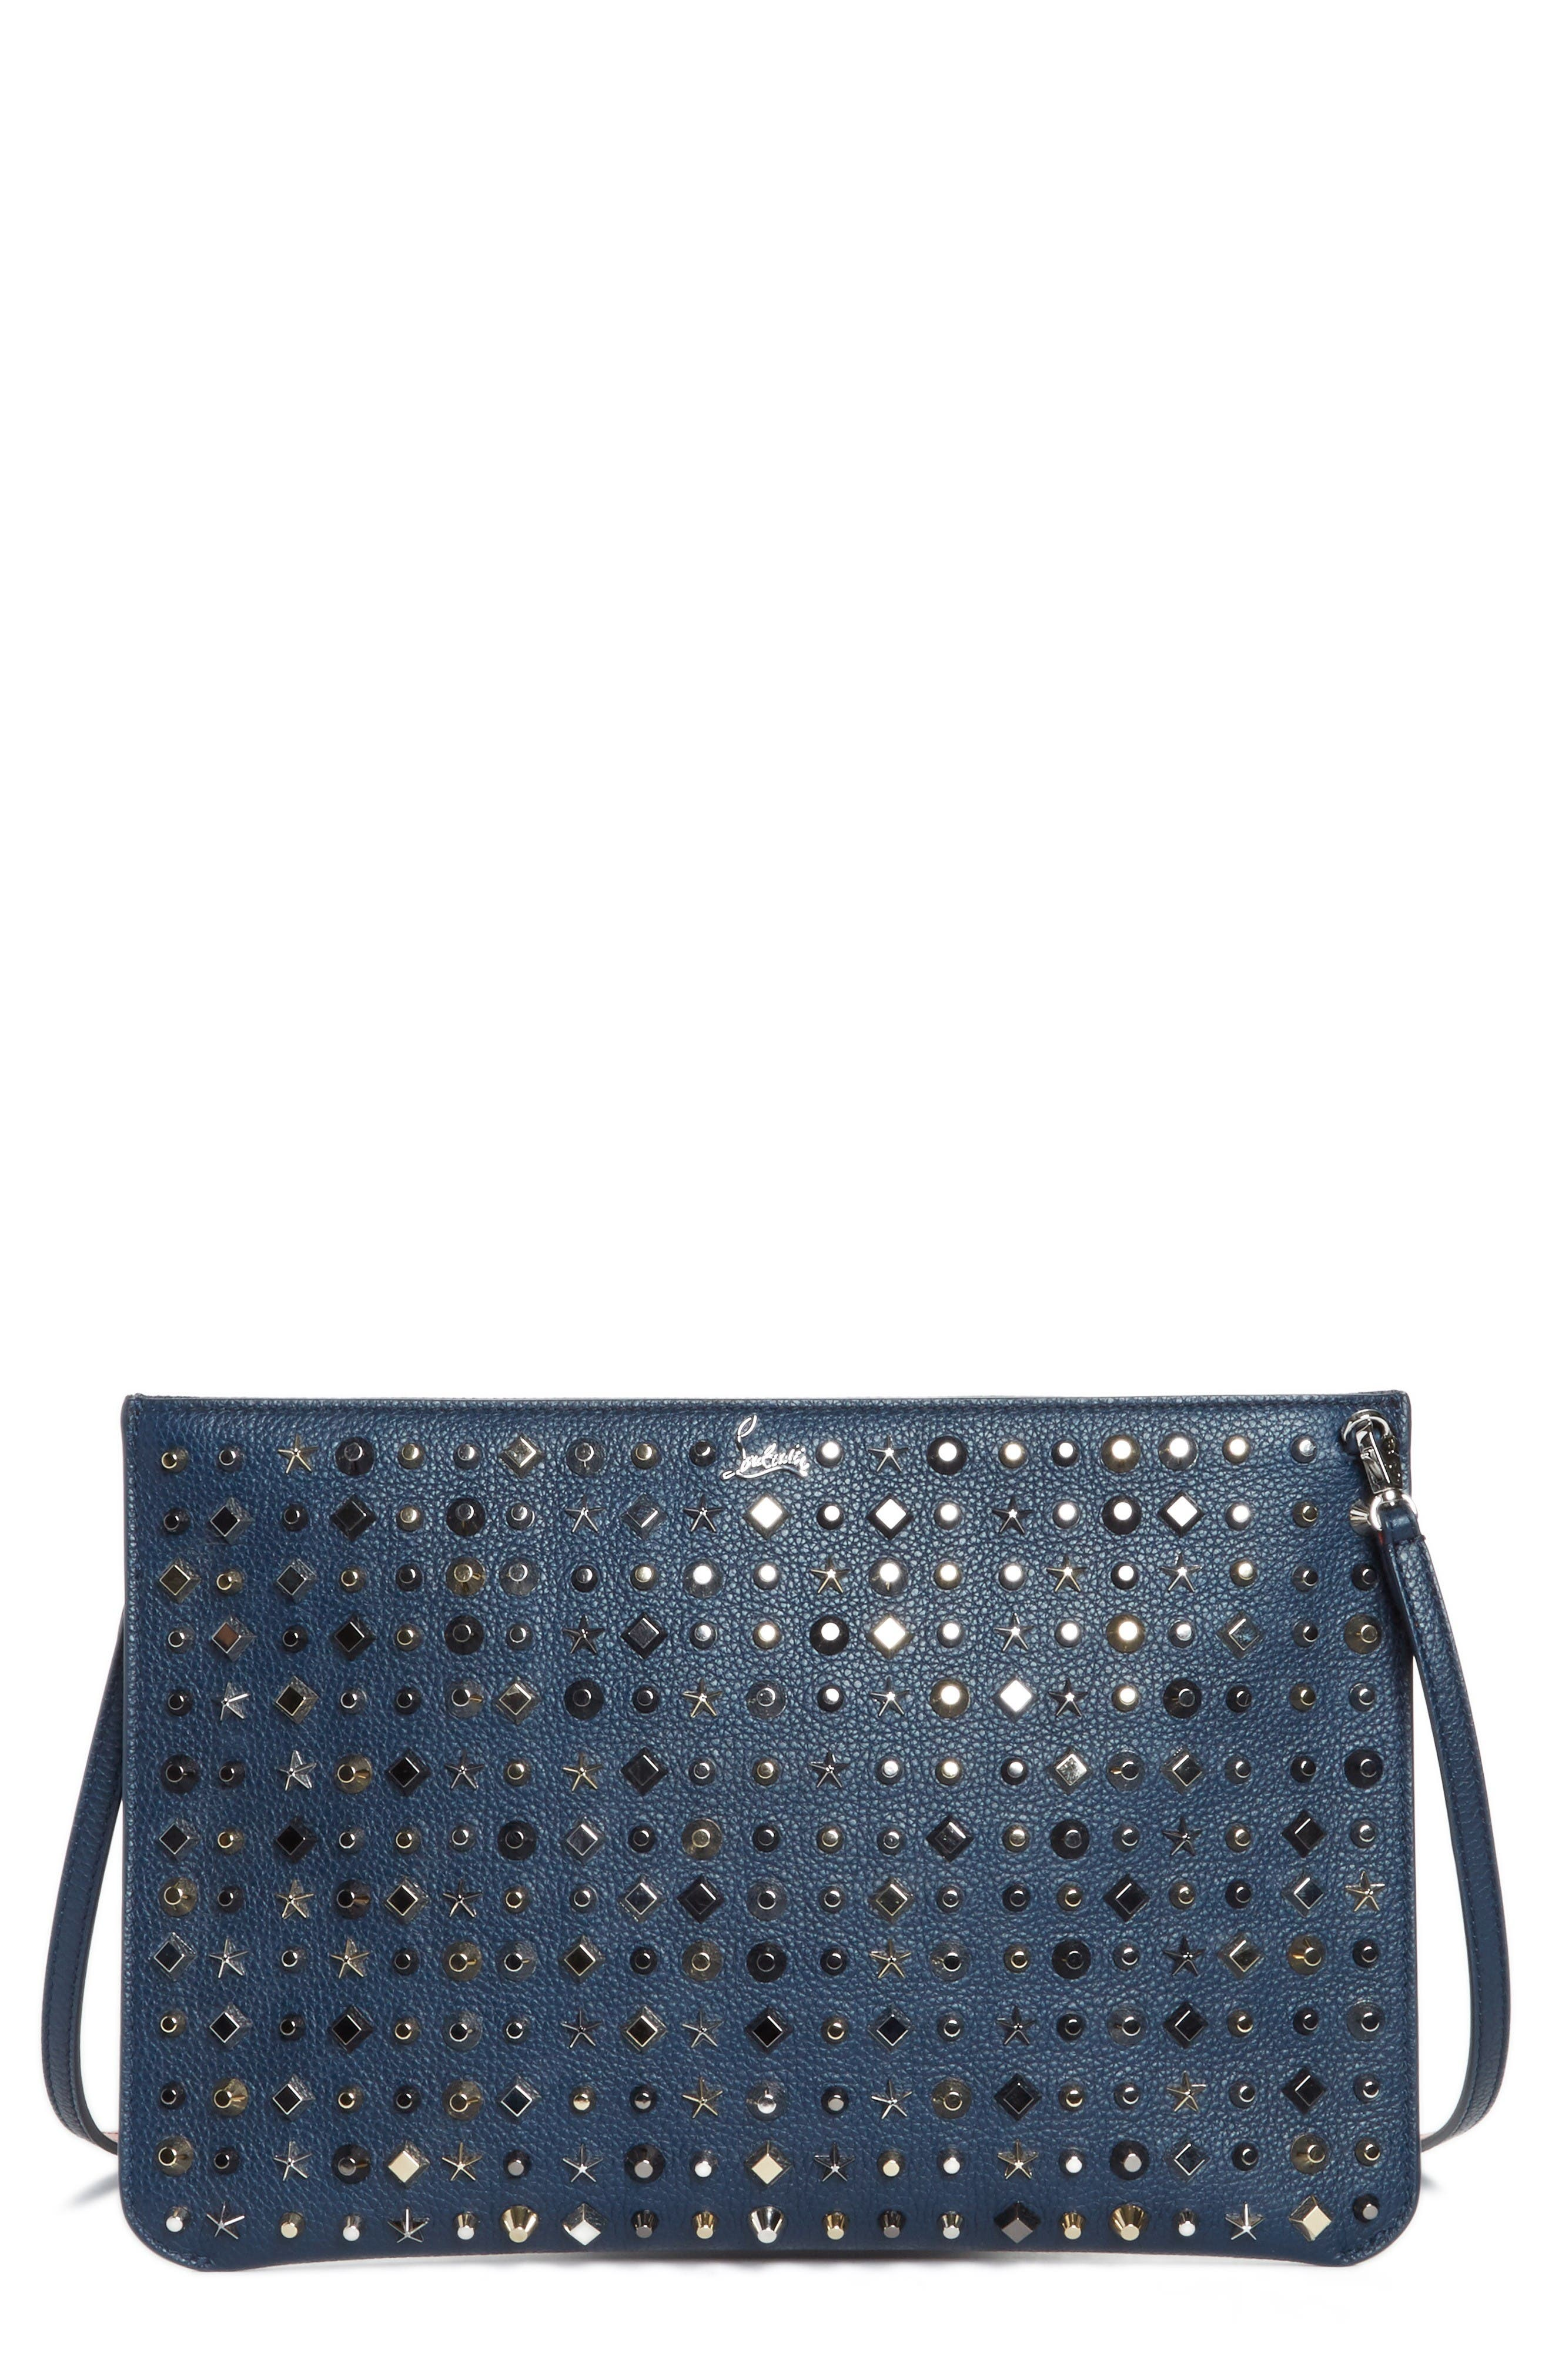 CHRISTIAN LOUBOUTIN Loubiclutch Spiked Leather Clutch